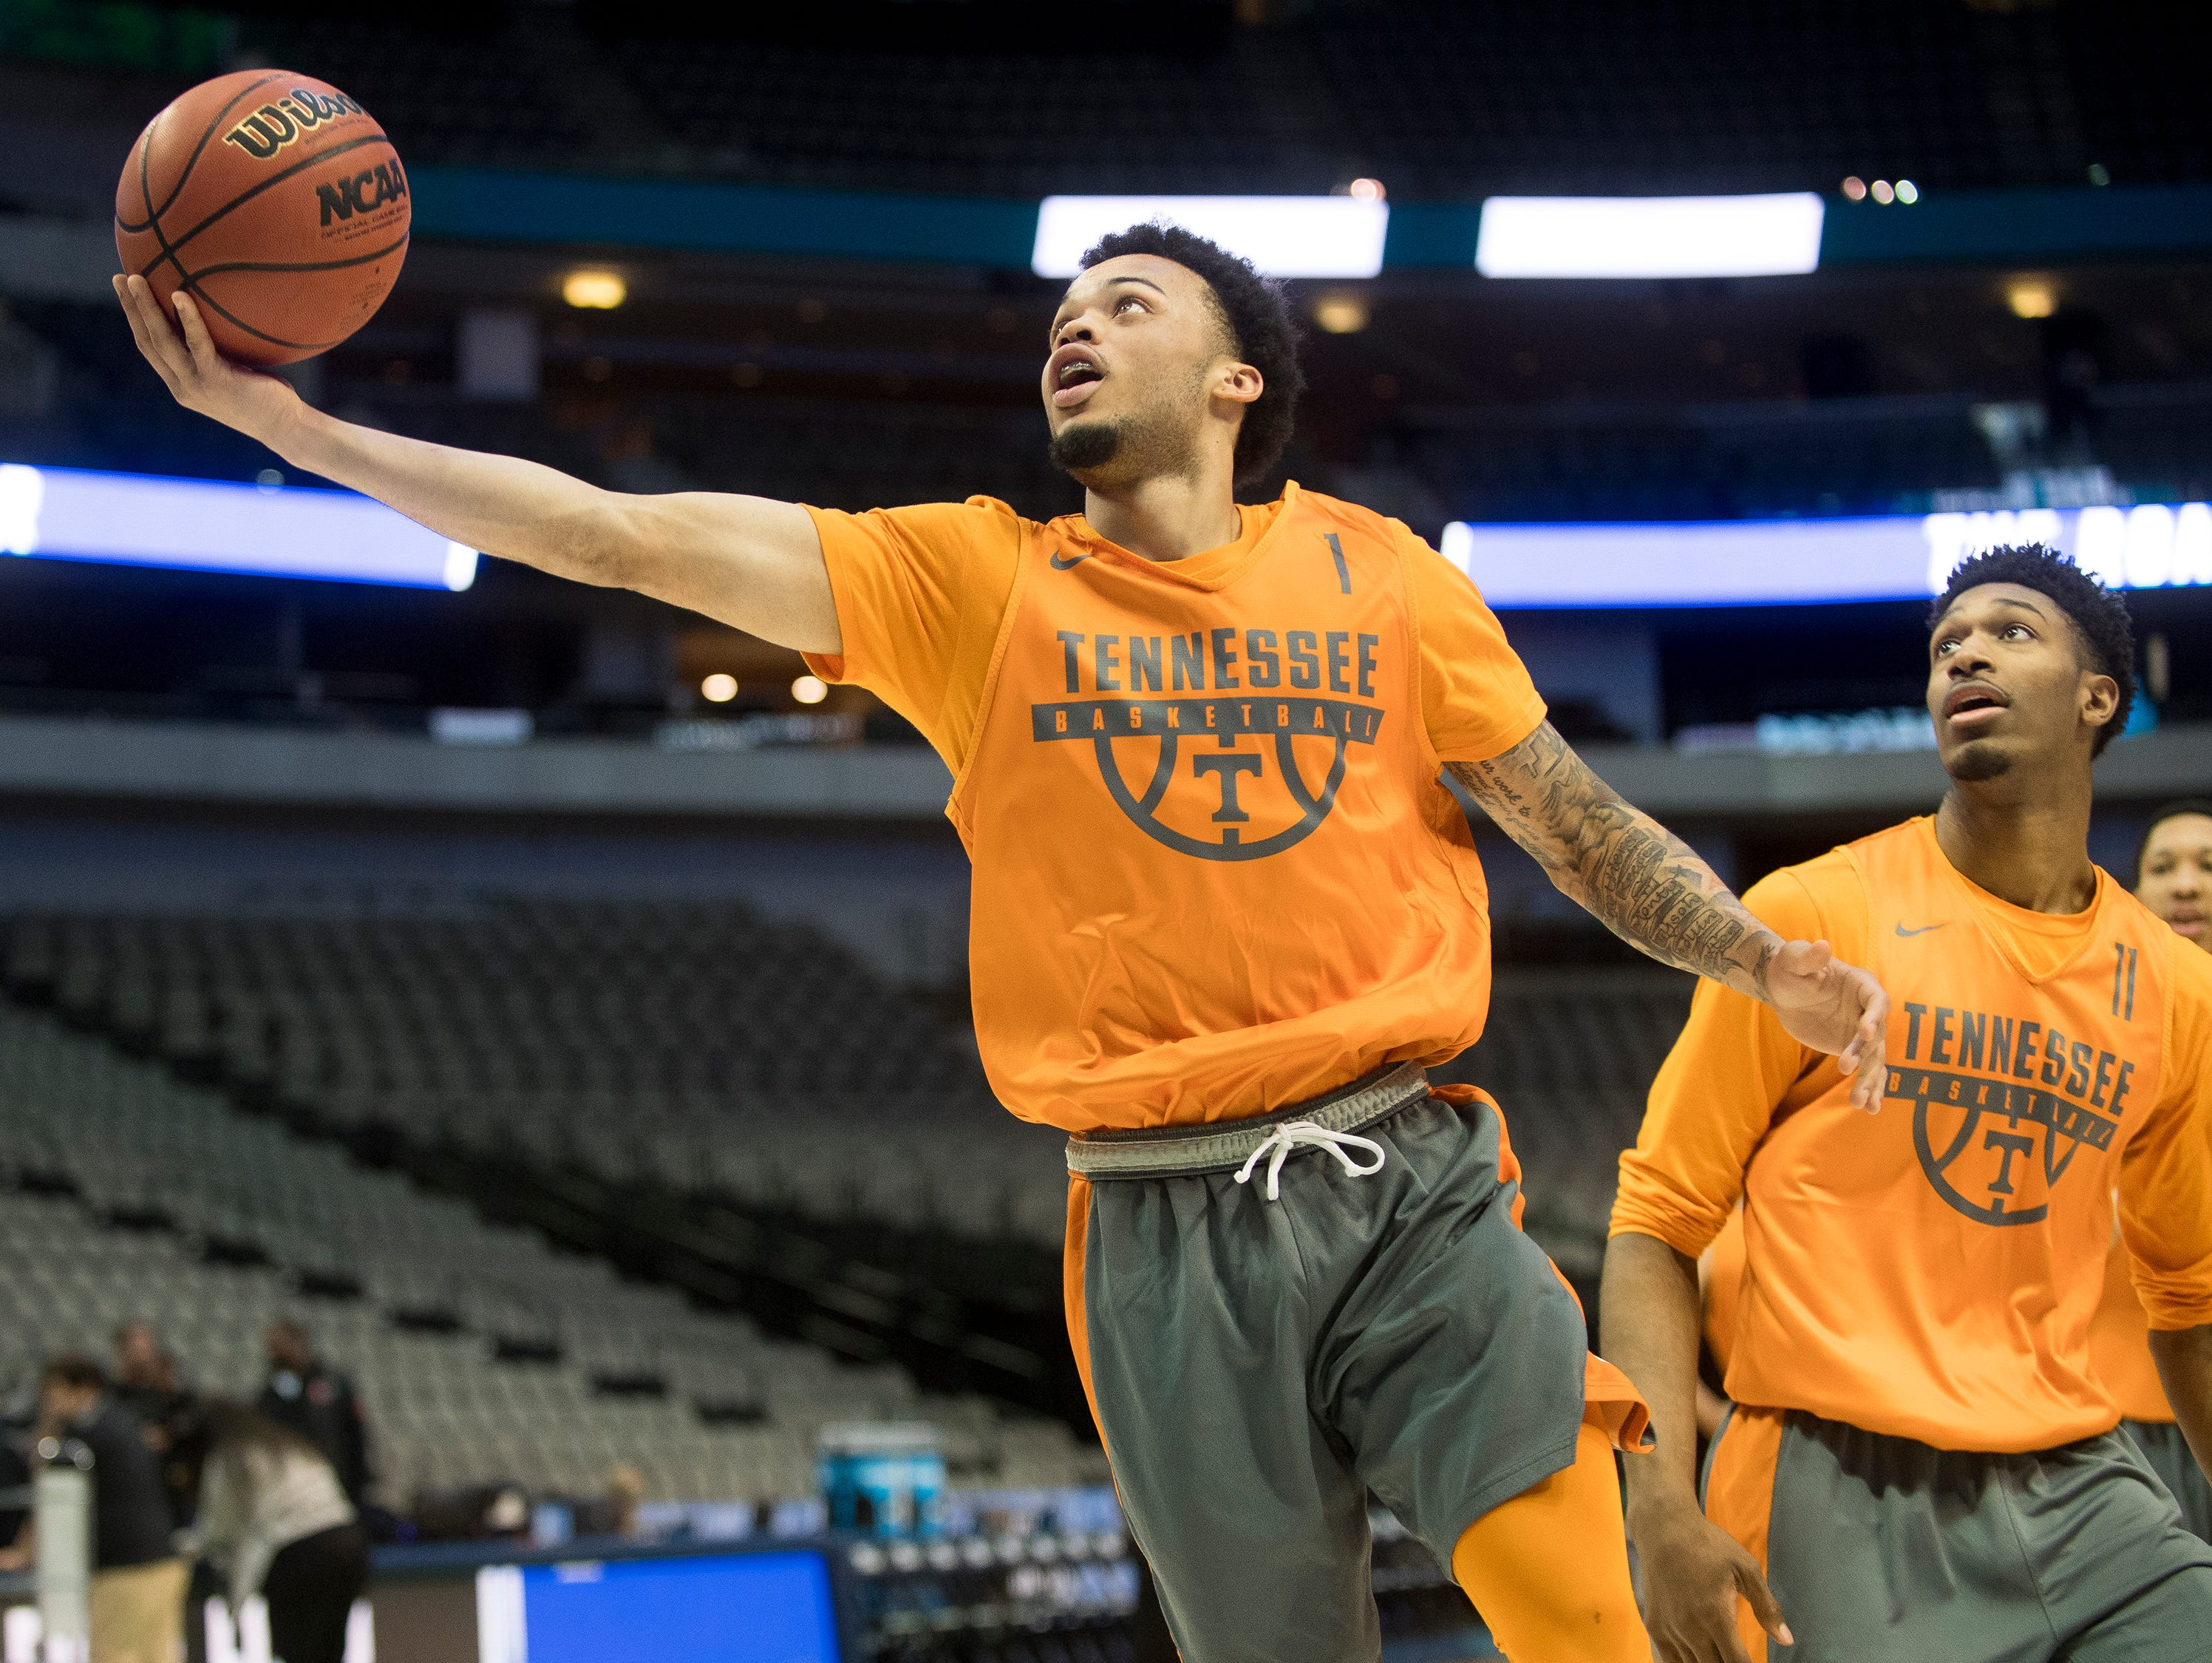 Tennessee guard Lamonte Turner (1) attempts a shot during practice at American Airlines Arena on Wednesday, March 14, 2018, ahead of the NCAA Tournament first round game between Tennessee and Wright State.